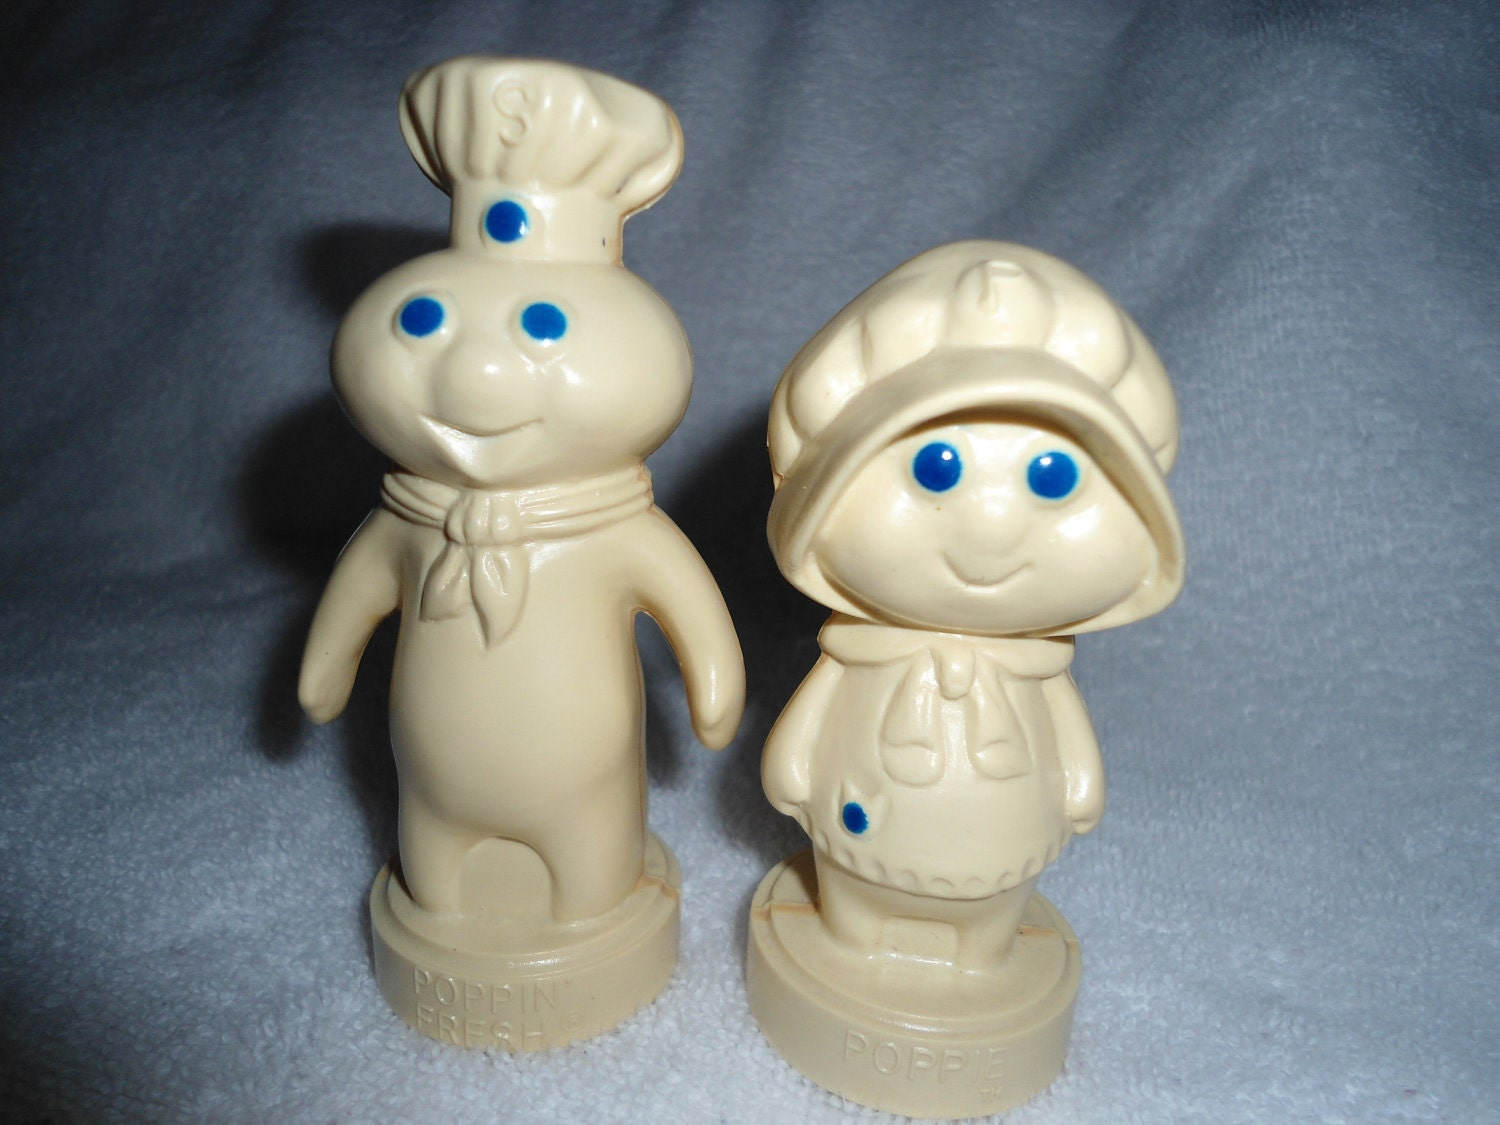 Pillsbury Doughboy And Doughgirl Salt Amp Pepper Shaker